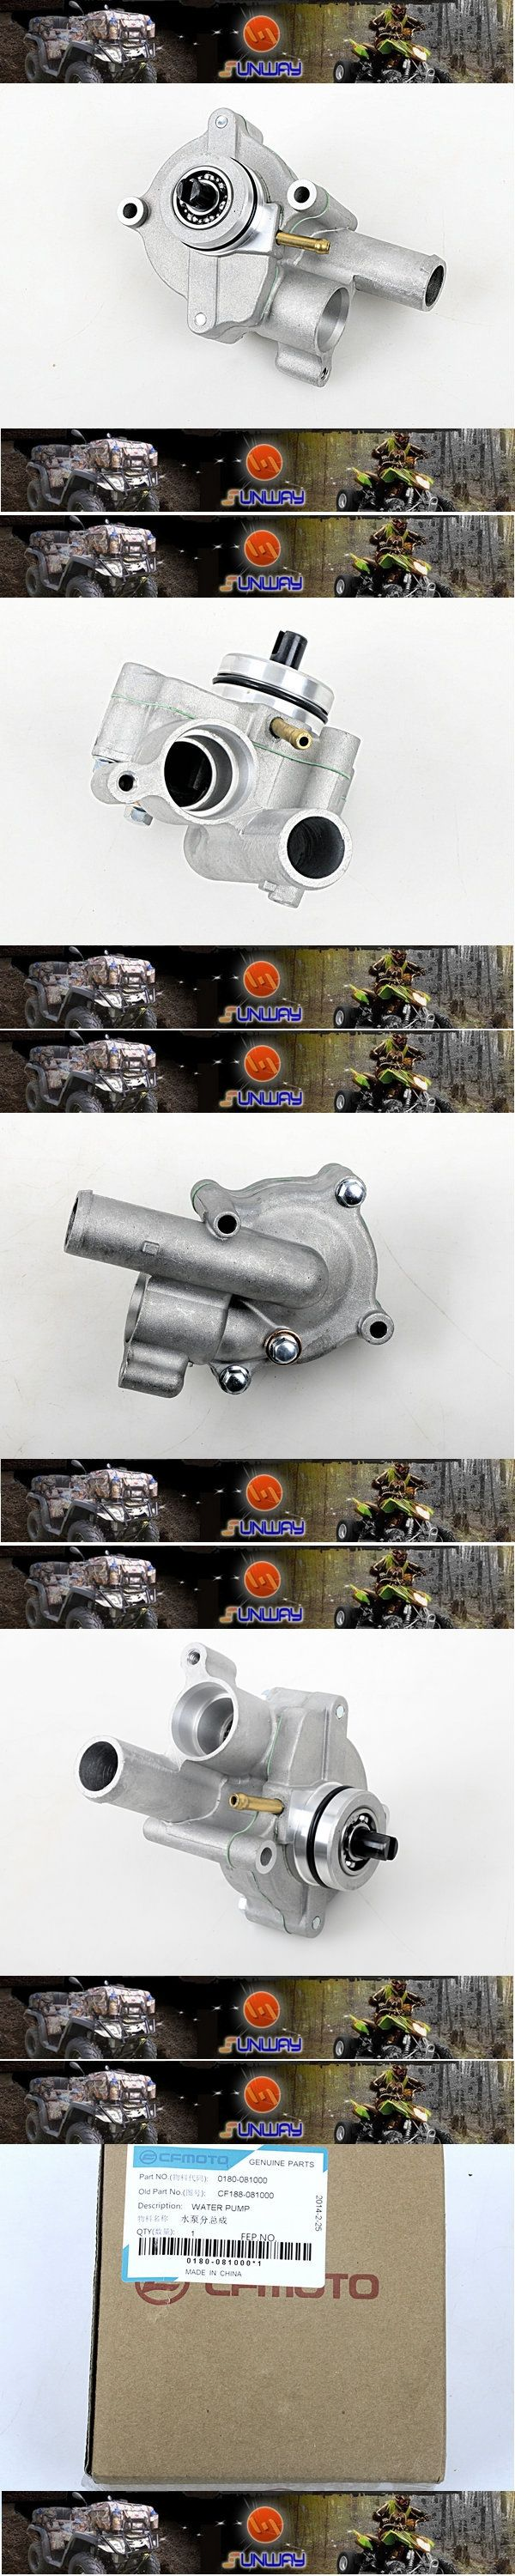 ATV Quad Parts Engine Water Pump for CFMOTOR ATV500 Free Shipping